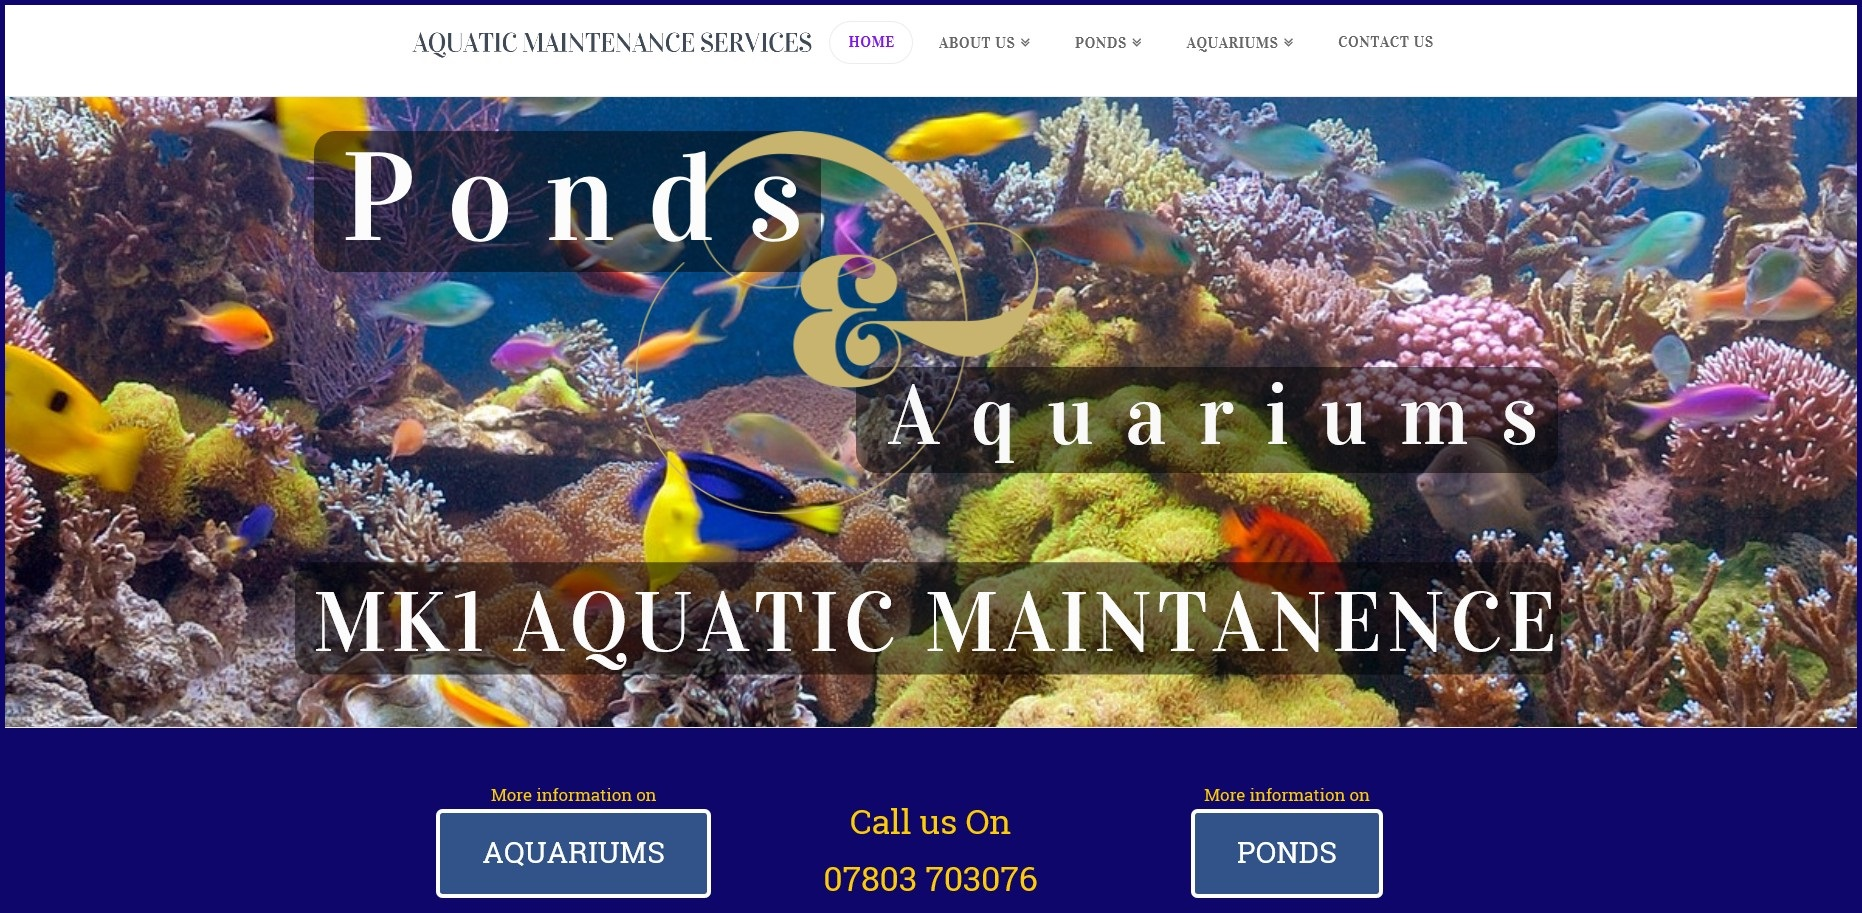 Website for Aquatic Maintenance MK1 by Malcolm King